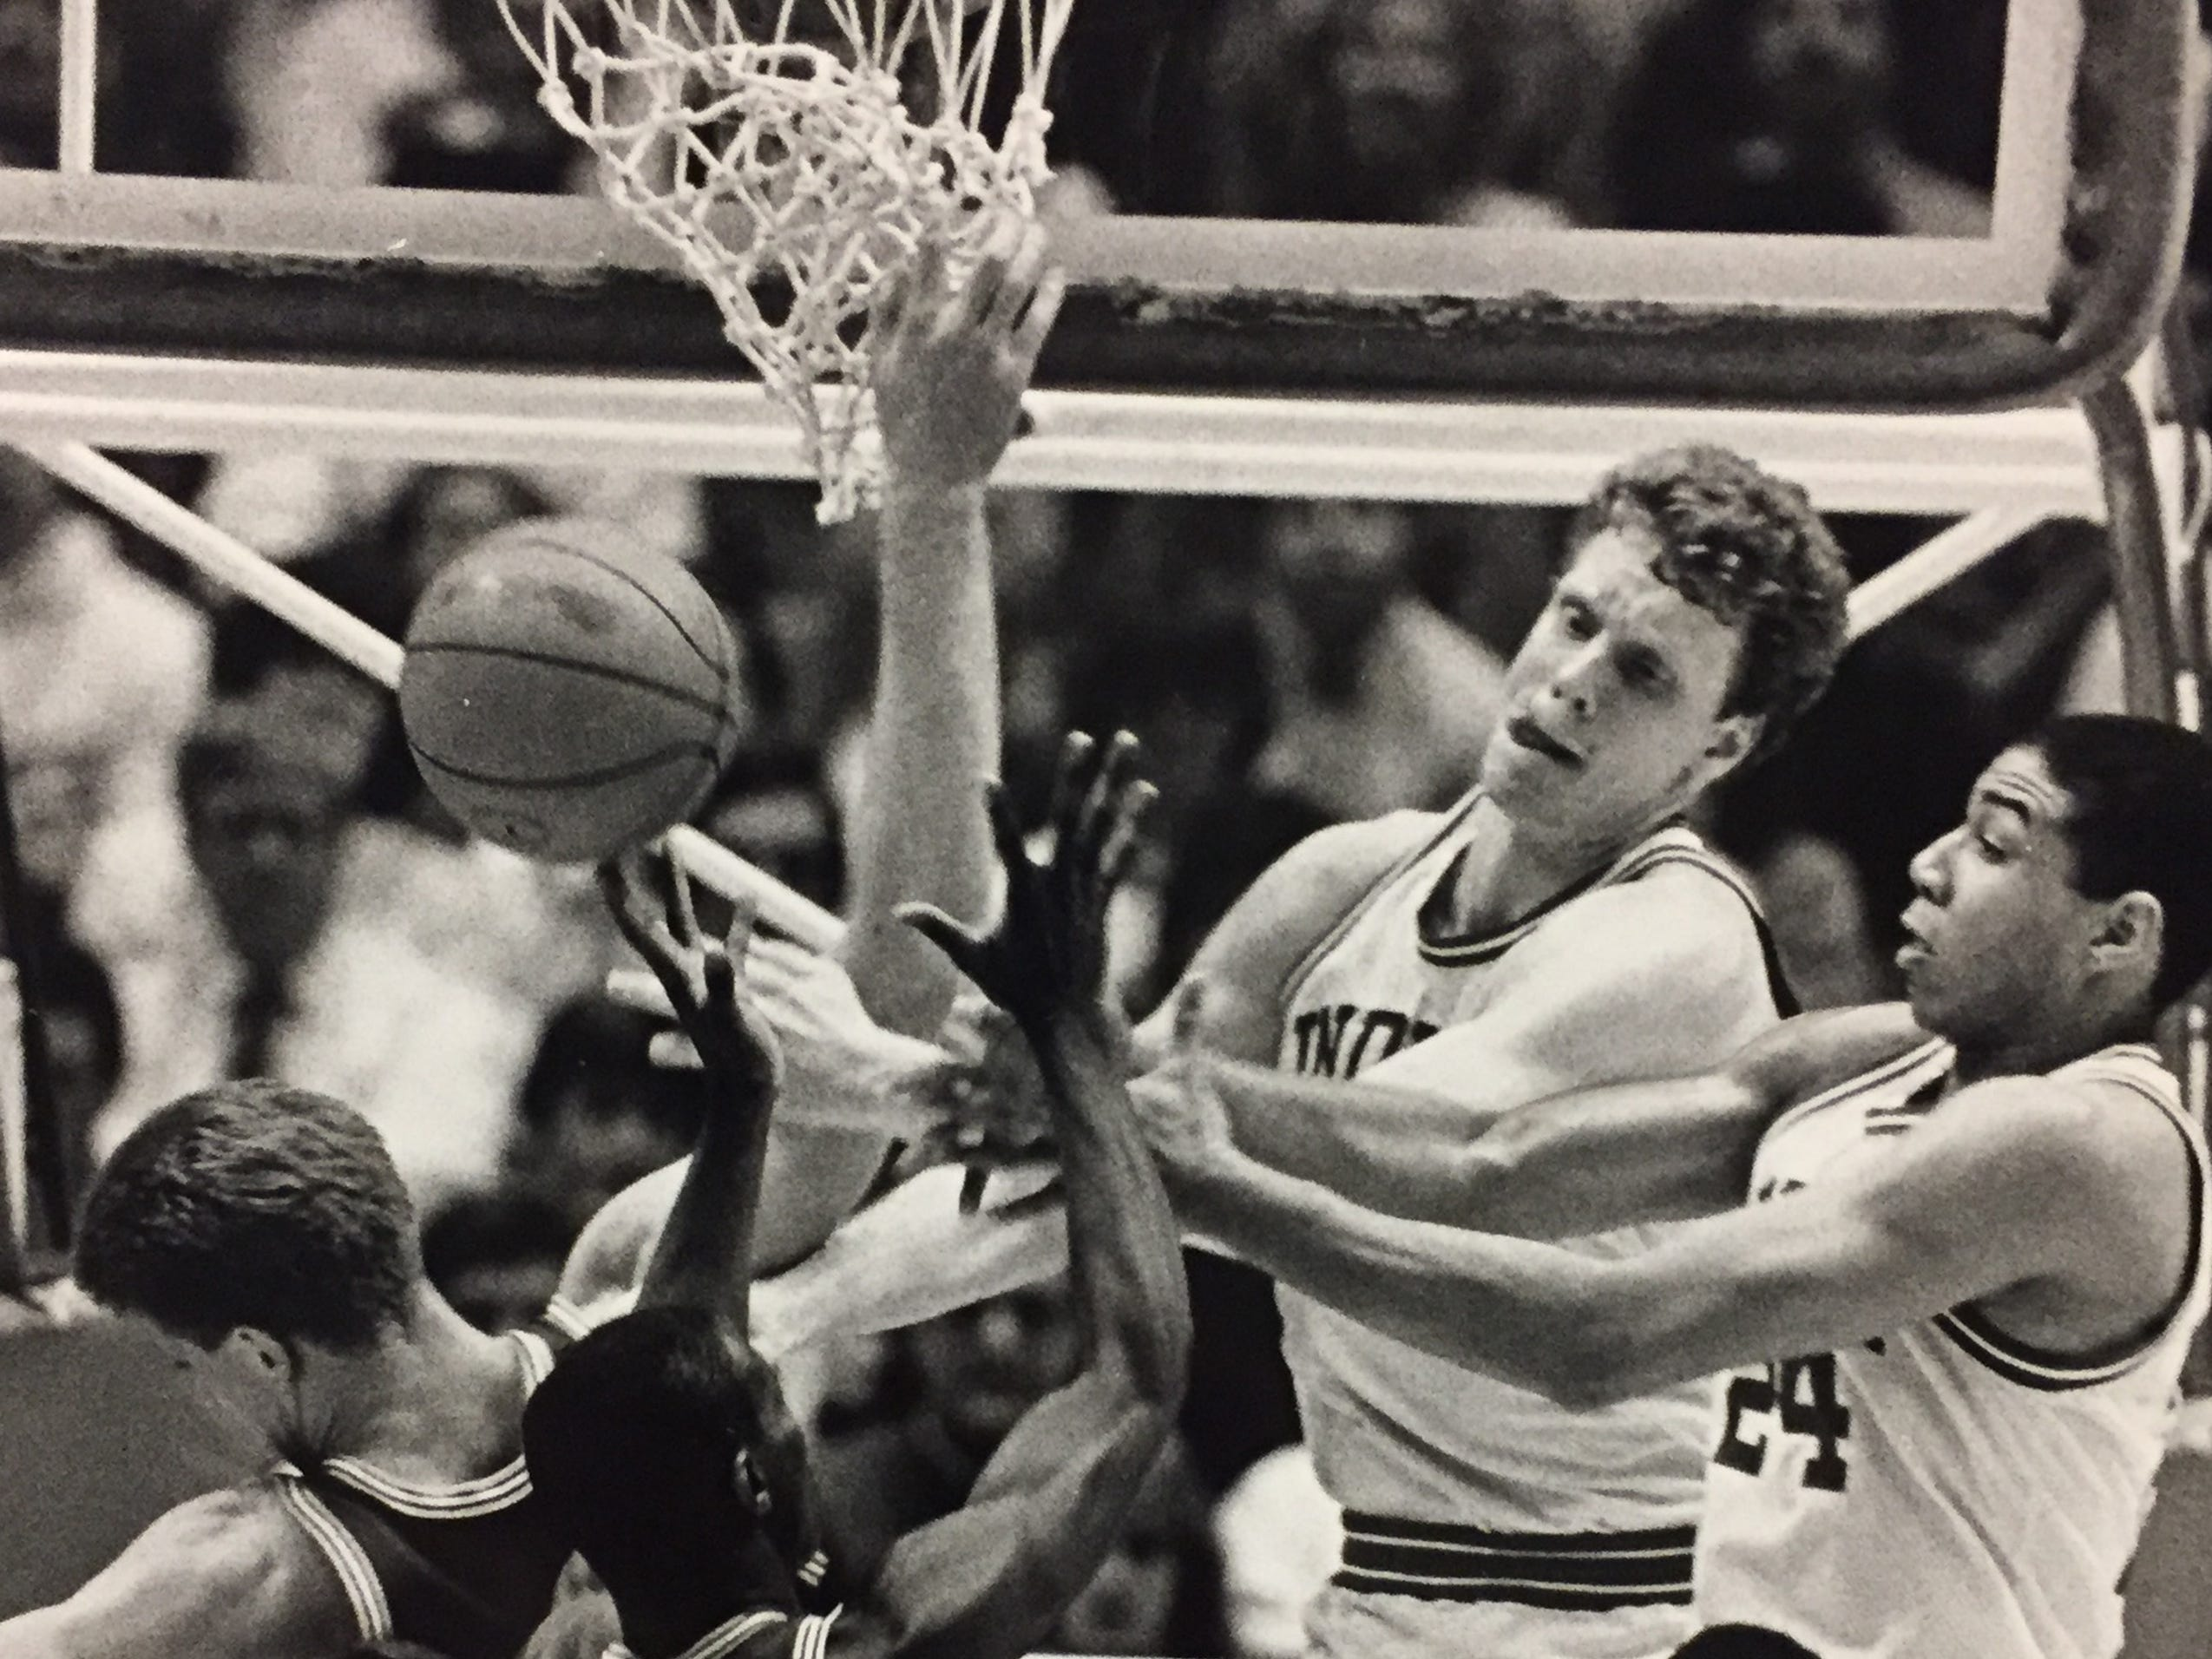 A Marquette miss ignited a wild scramble for the rebound as Indiana's Kreigh Smith, Uwe Blab, Daryl Thomas and Stew Robinson all go for the ball on March 24, 1985 in the NIT.